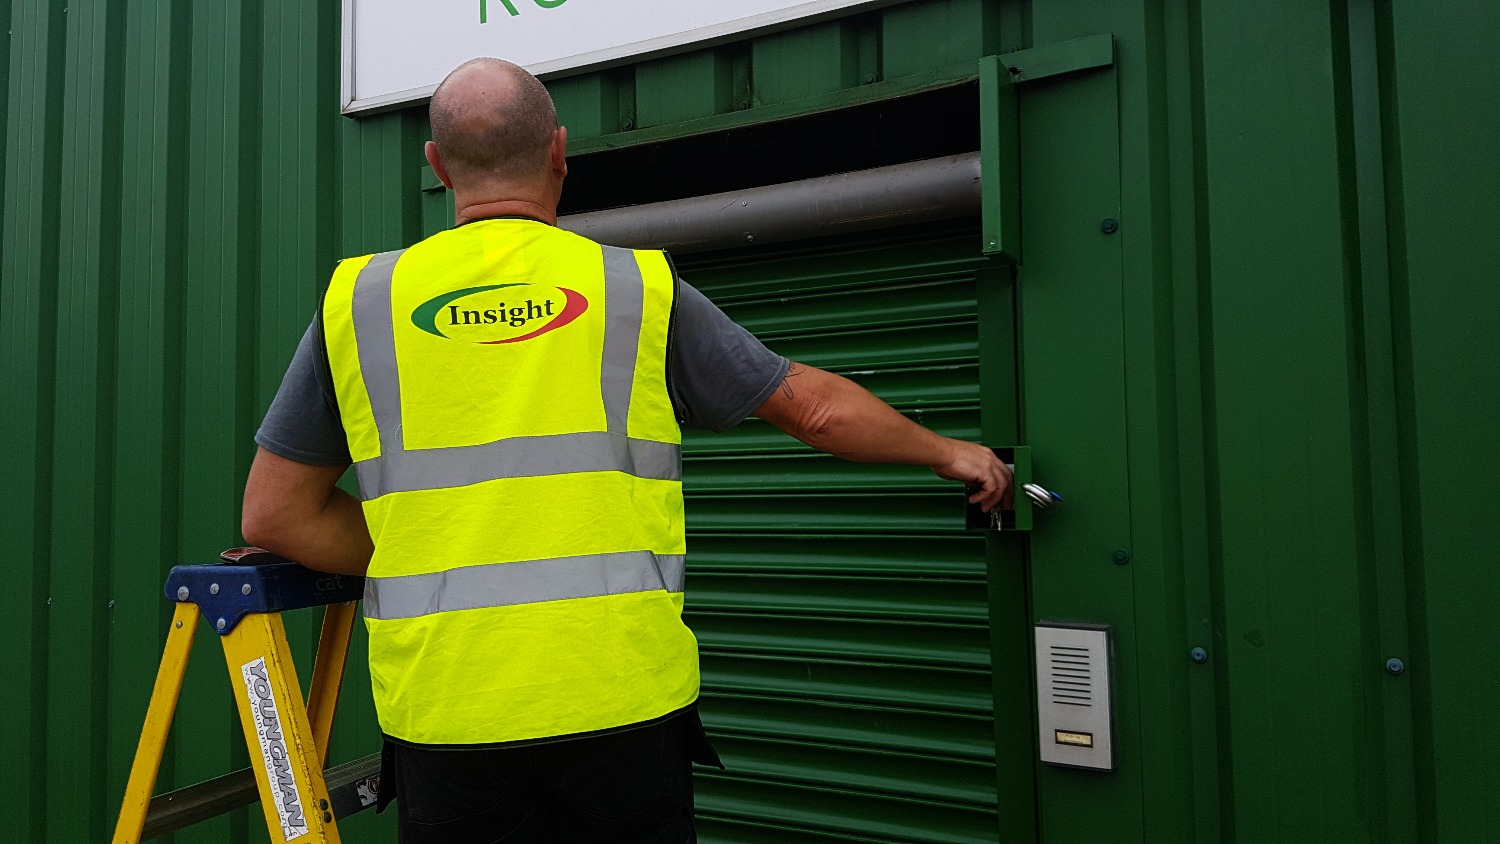 Insightuk Engineer opening our Roller Shutter after fixing it!